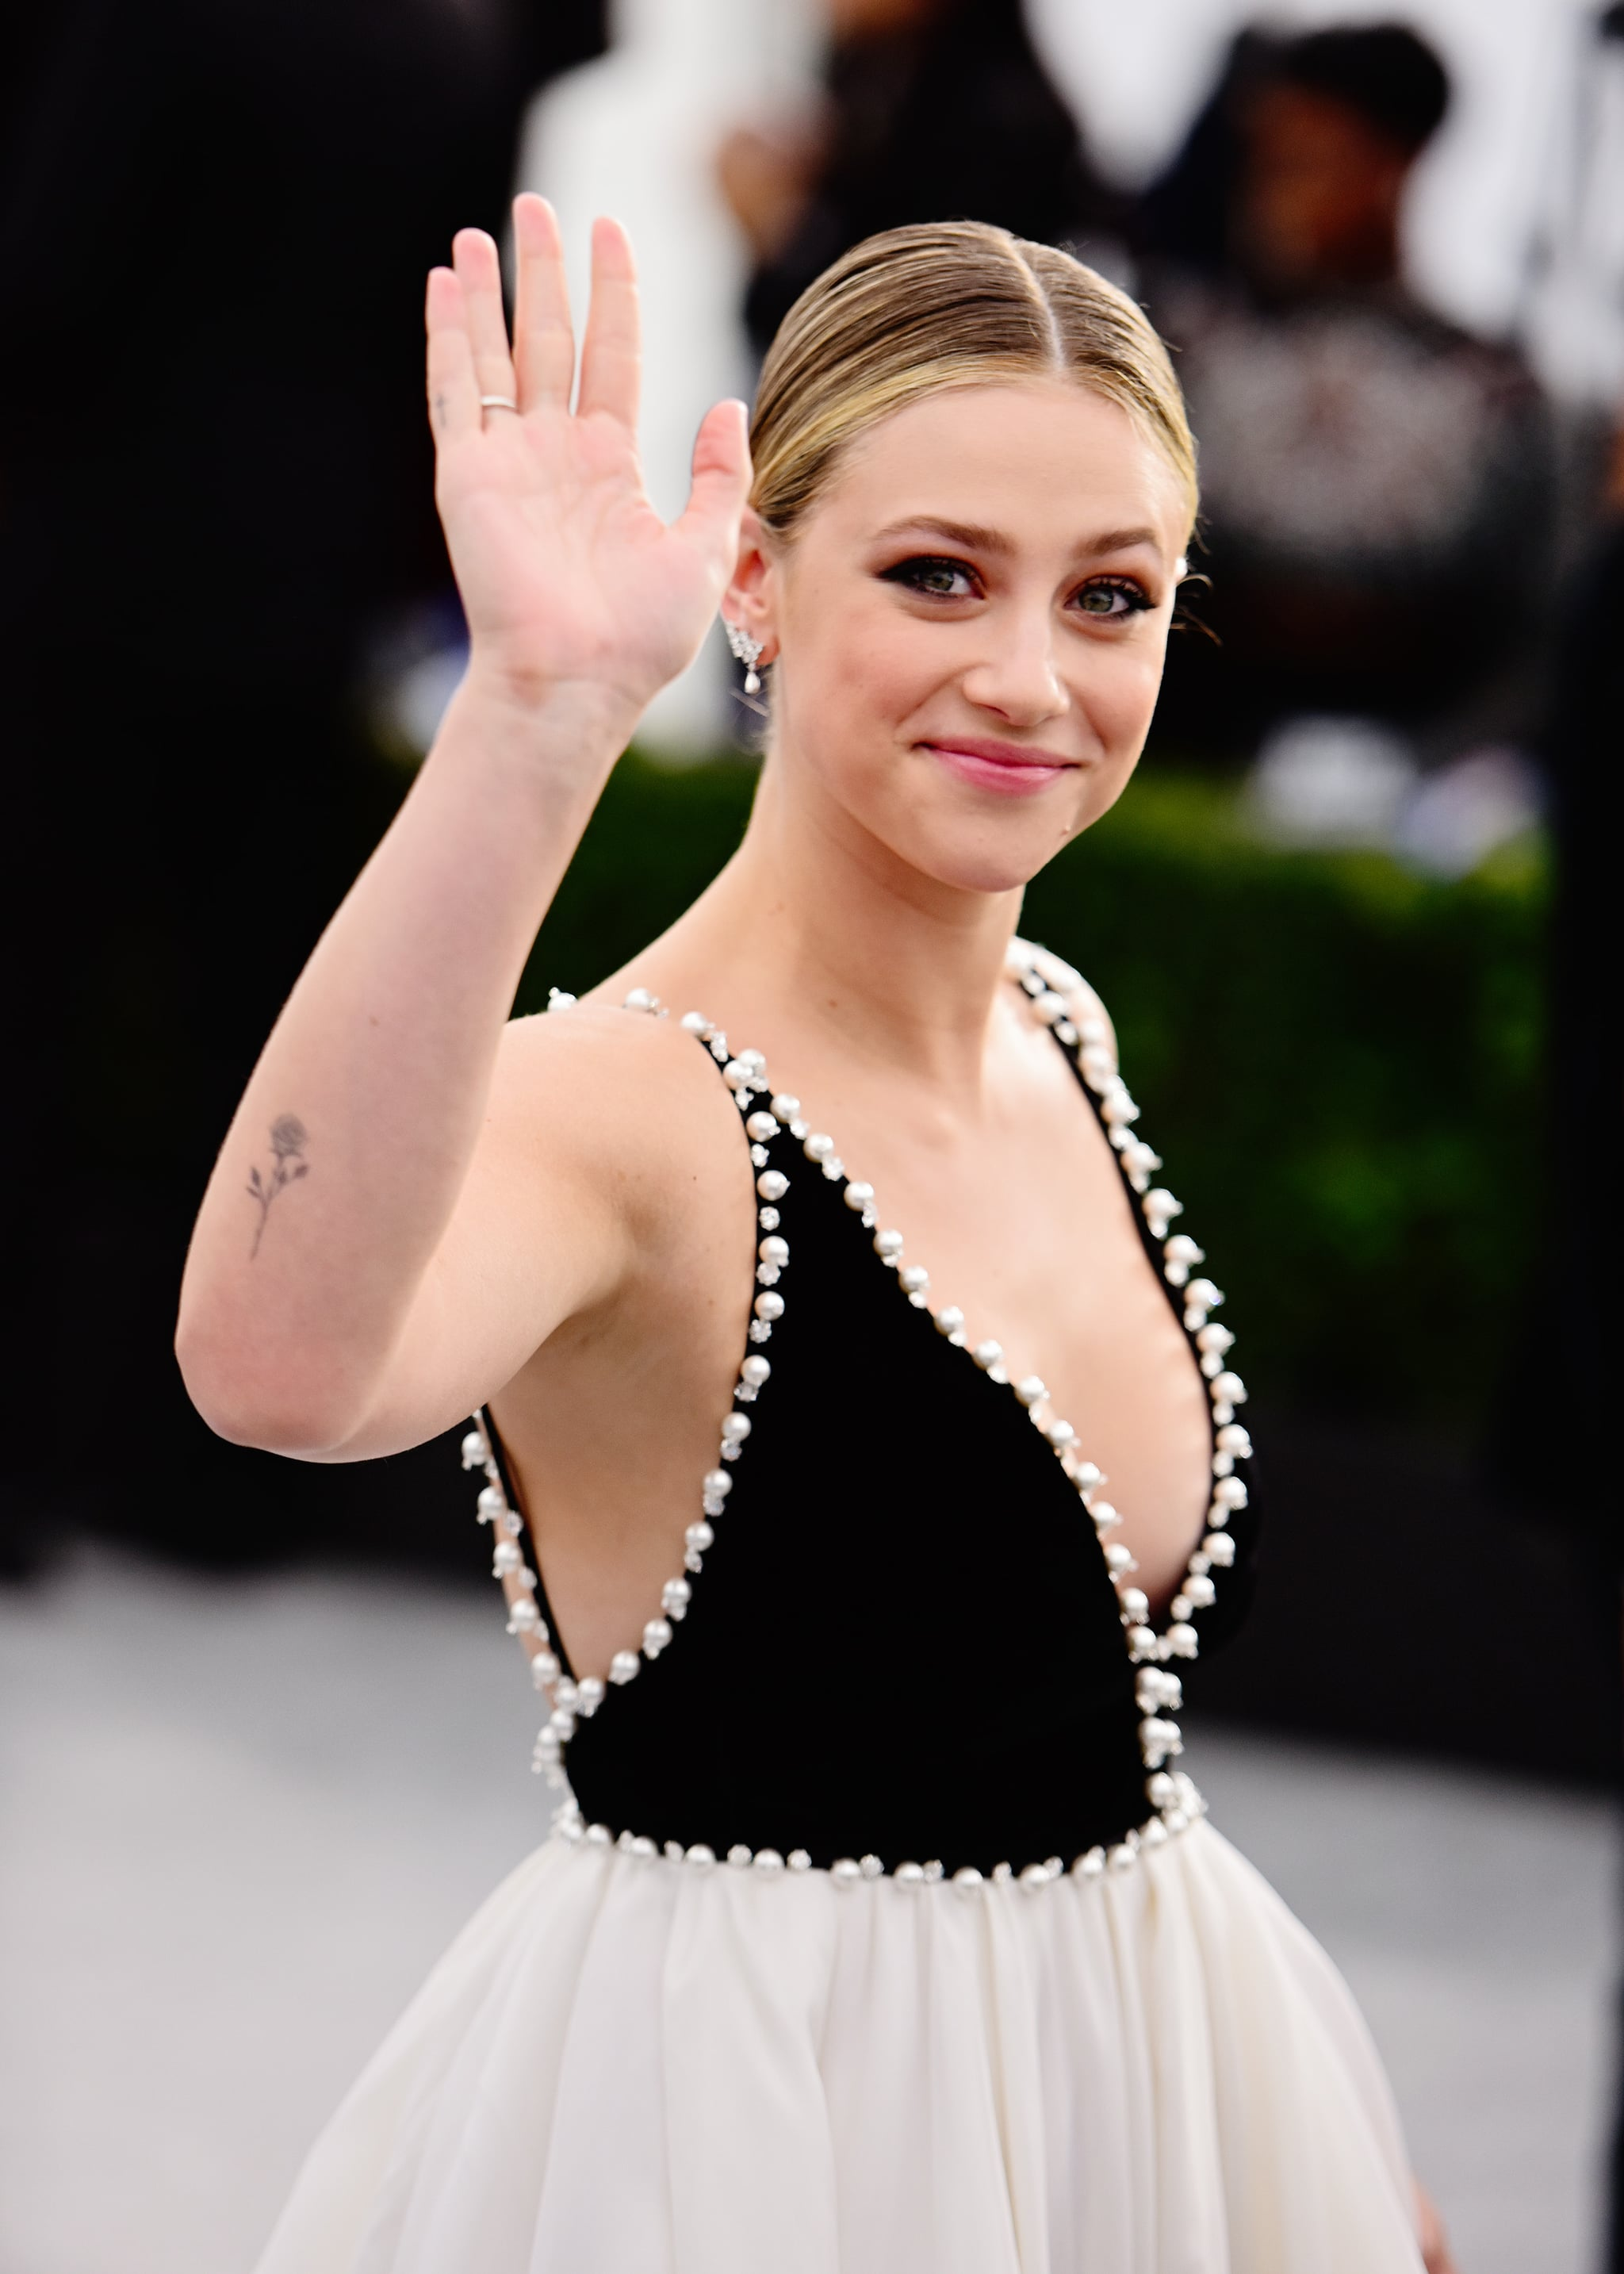 LOS ANGELES, CALIFORNIA - JANUARY 19:  Actor Lili Reinhart attends the 26th annual Screen Actors Guild Awards at The Shrine Auditorium on January 19, 2020 in Los Angeles, California. (Photo by Chelsea Guglielmino/Getty Images)